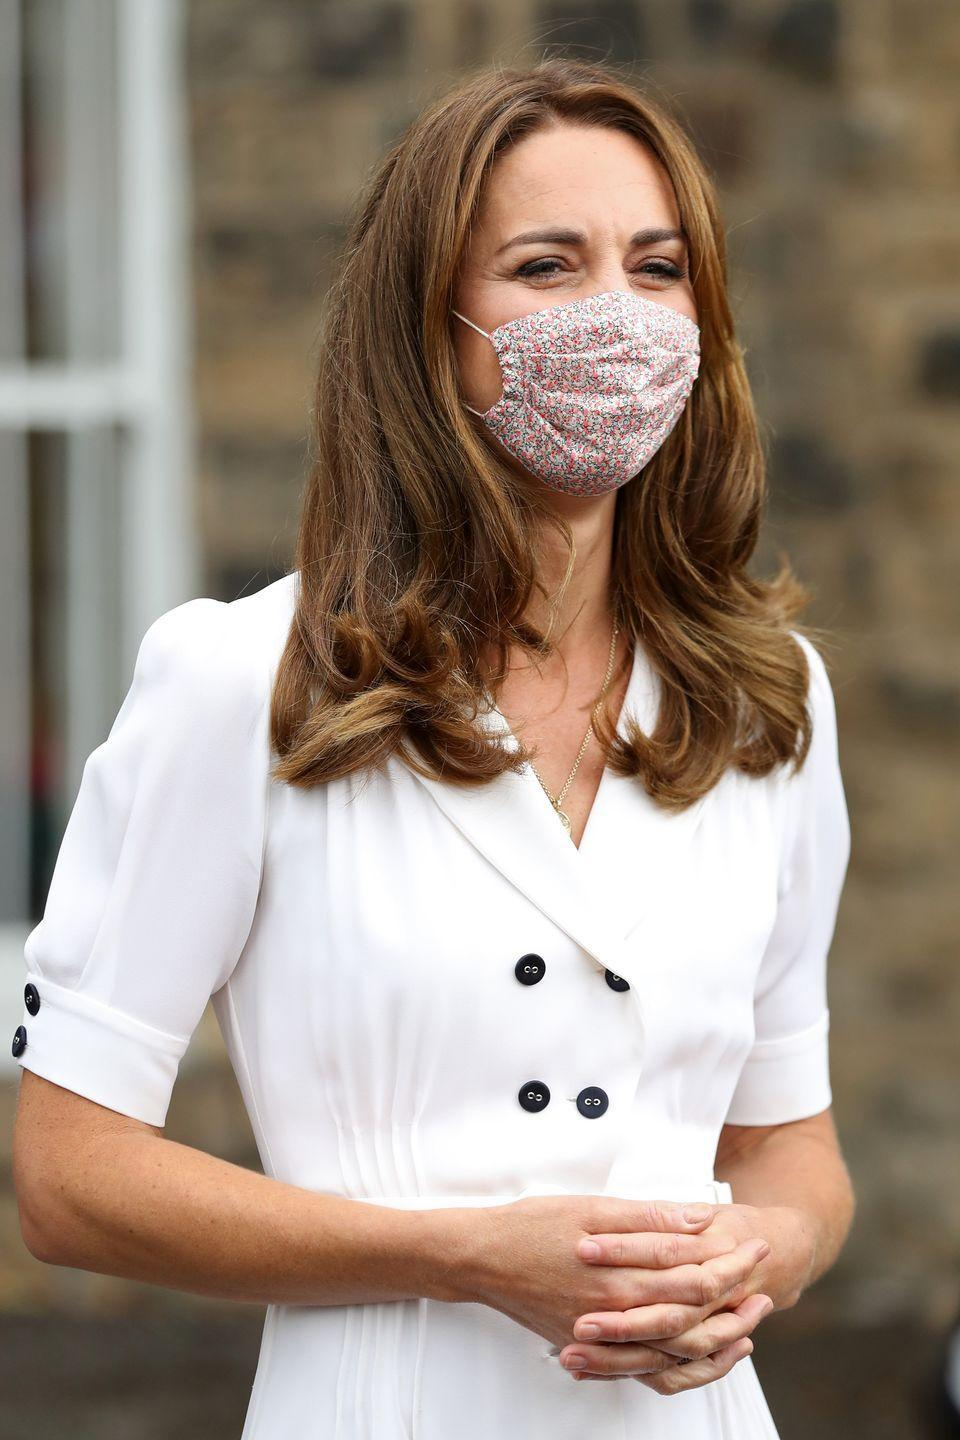 """<p>She wore the same mask earlier in August when she dropped off donations at a Baby Bank in Sheffield, which helps provide families in need with supplies for their newborns.</p><p><a class=""""link rapid-noclick-resp"""" href=""""https://www.amaiakids.co.uk/collections/masks-1/products/adult-reusable-cotton-face-mask-pepper-liberty?variant=32480581976146"""" rel=""""nofollow noopener"""" target=""""_blank"""" data-ylk=""""slk:Shop the Mask"""">Shop the Mask</a></p>"""